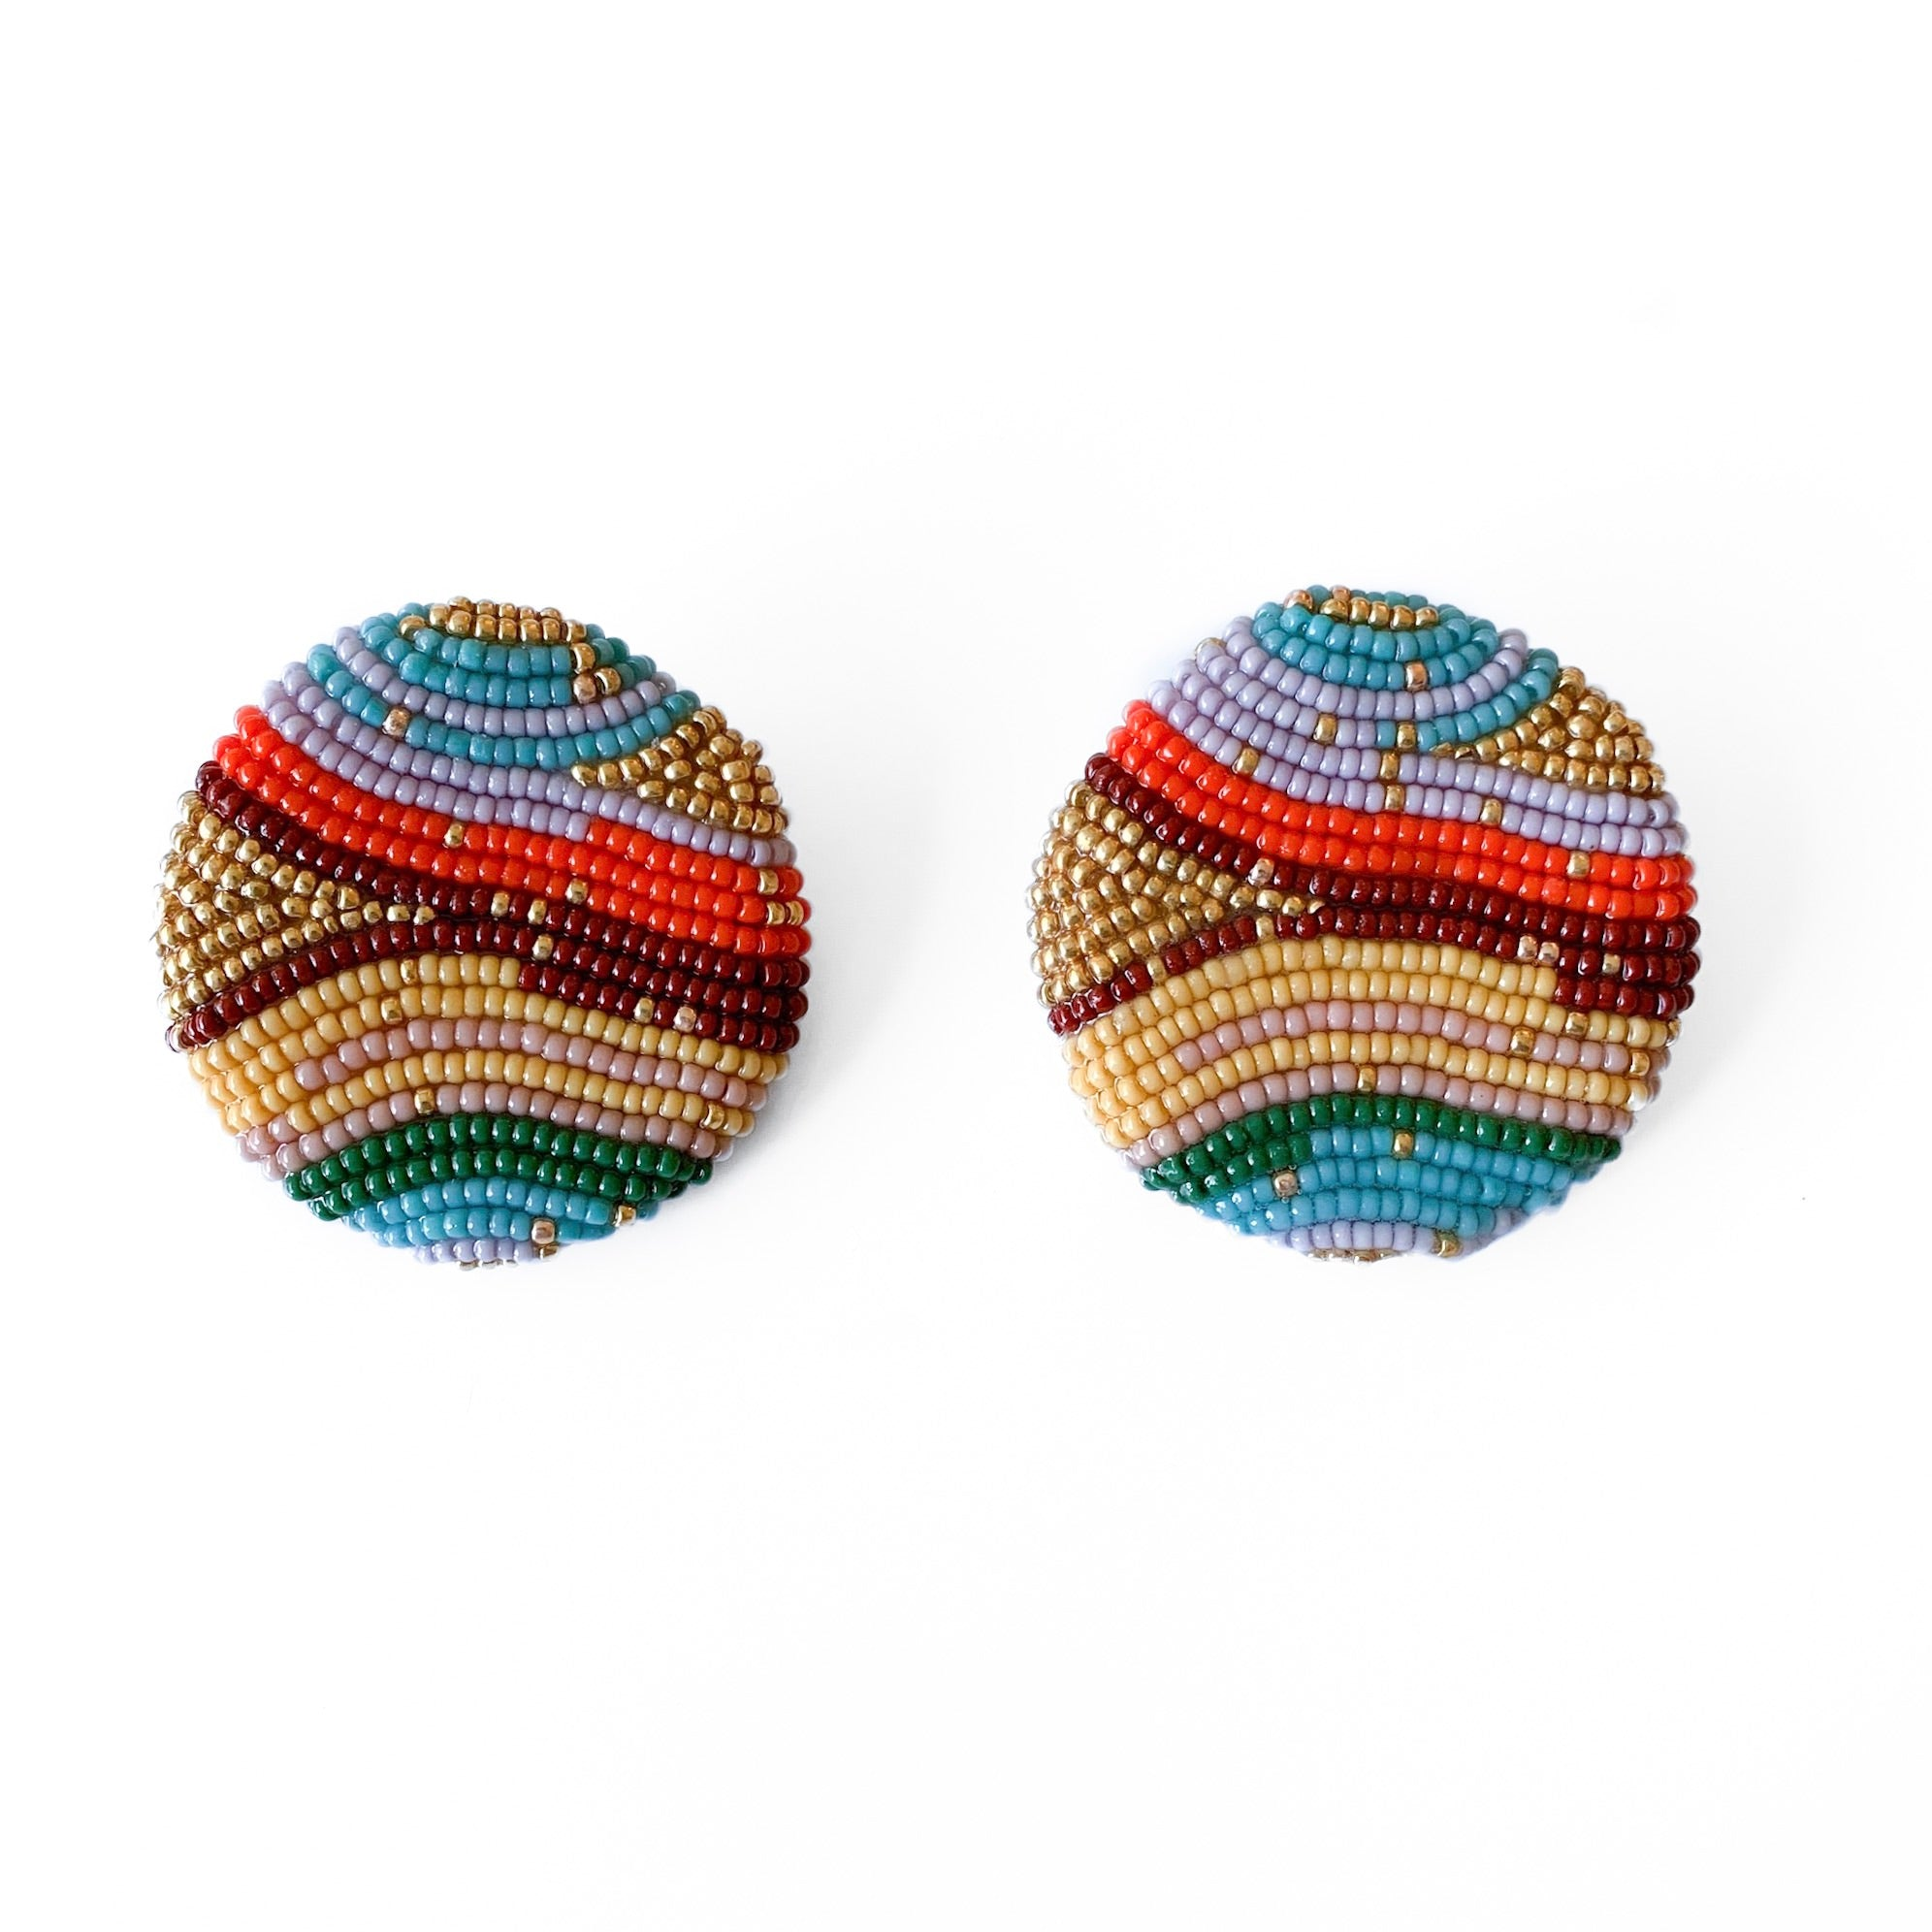 HANDMADE BEADED EARRINGS , Carolina herrera, oscar de la renta,  , maxi earrings, multicolor